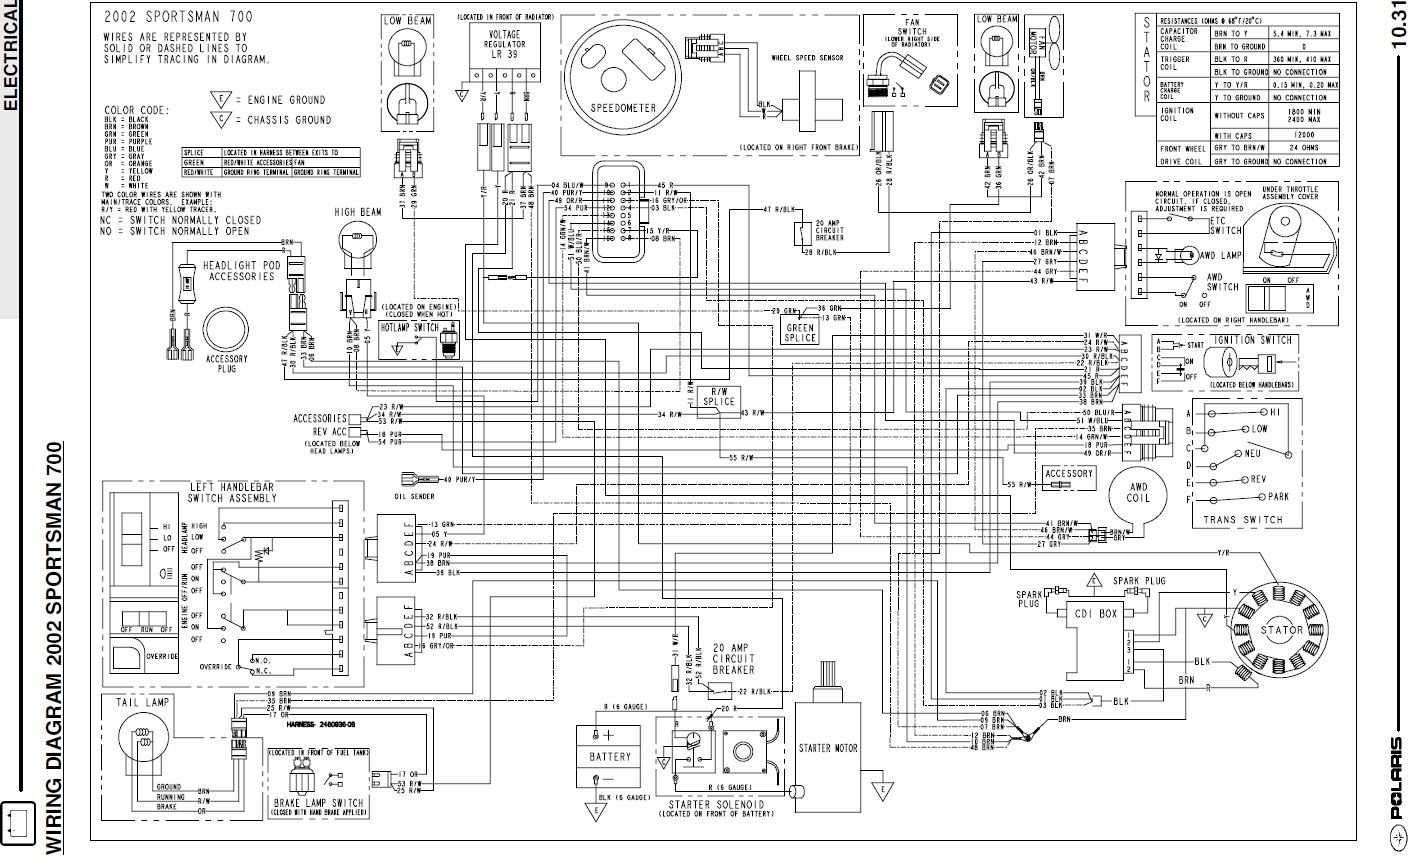 2014 polaris ranger wiring diagram 2015 polaris rzr 900 wiring diagram | free wiring diagram polaris ranger electrical schematic